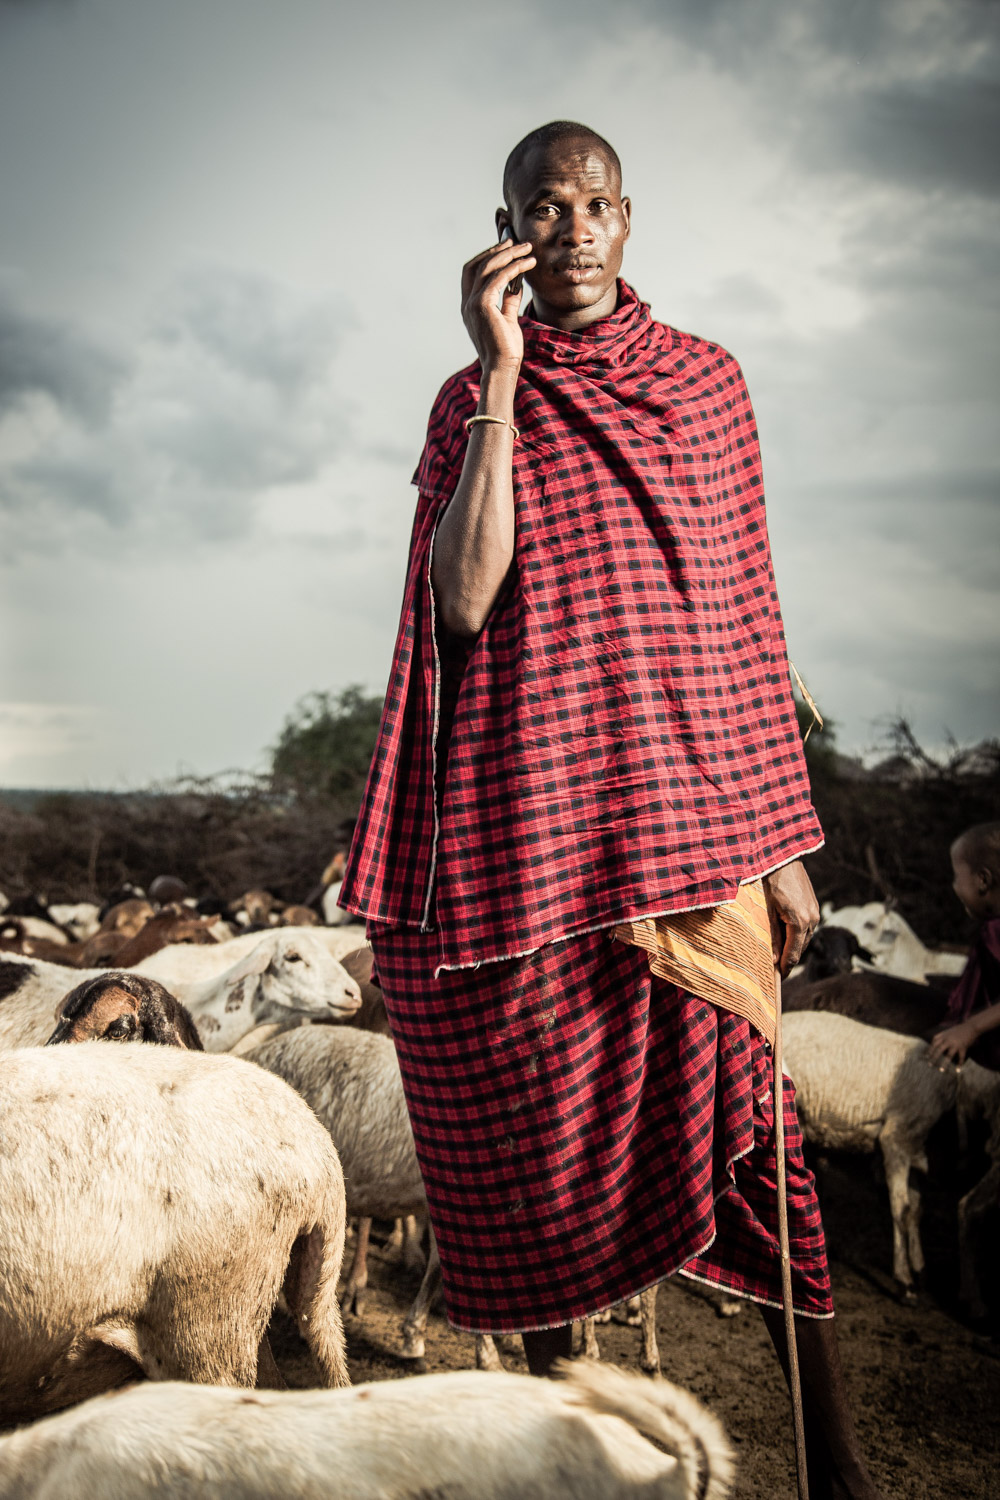 The introduction of the mobile phone has been revolutionary for the Maasai. These once-isolated people can now easily communicate with others in neighbouring communities as well as in towns and cities across Kenya and Tanzania and beyond. They have instant access to the market price in other parts of the country for livestock; in a flash they can call a doctor if they fall ill, and they can keep in touch with family when they were far away from home grazing the cows. With the rise of the smartphone, a whole world of opportunity is opening up for the Maasai. Internet businesses are being established, phone banking and money transfers are the norm, political opinions are being discussed on a wider scale and social media sites such as Facebook have become an obsession among younger Maasai.